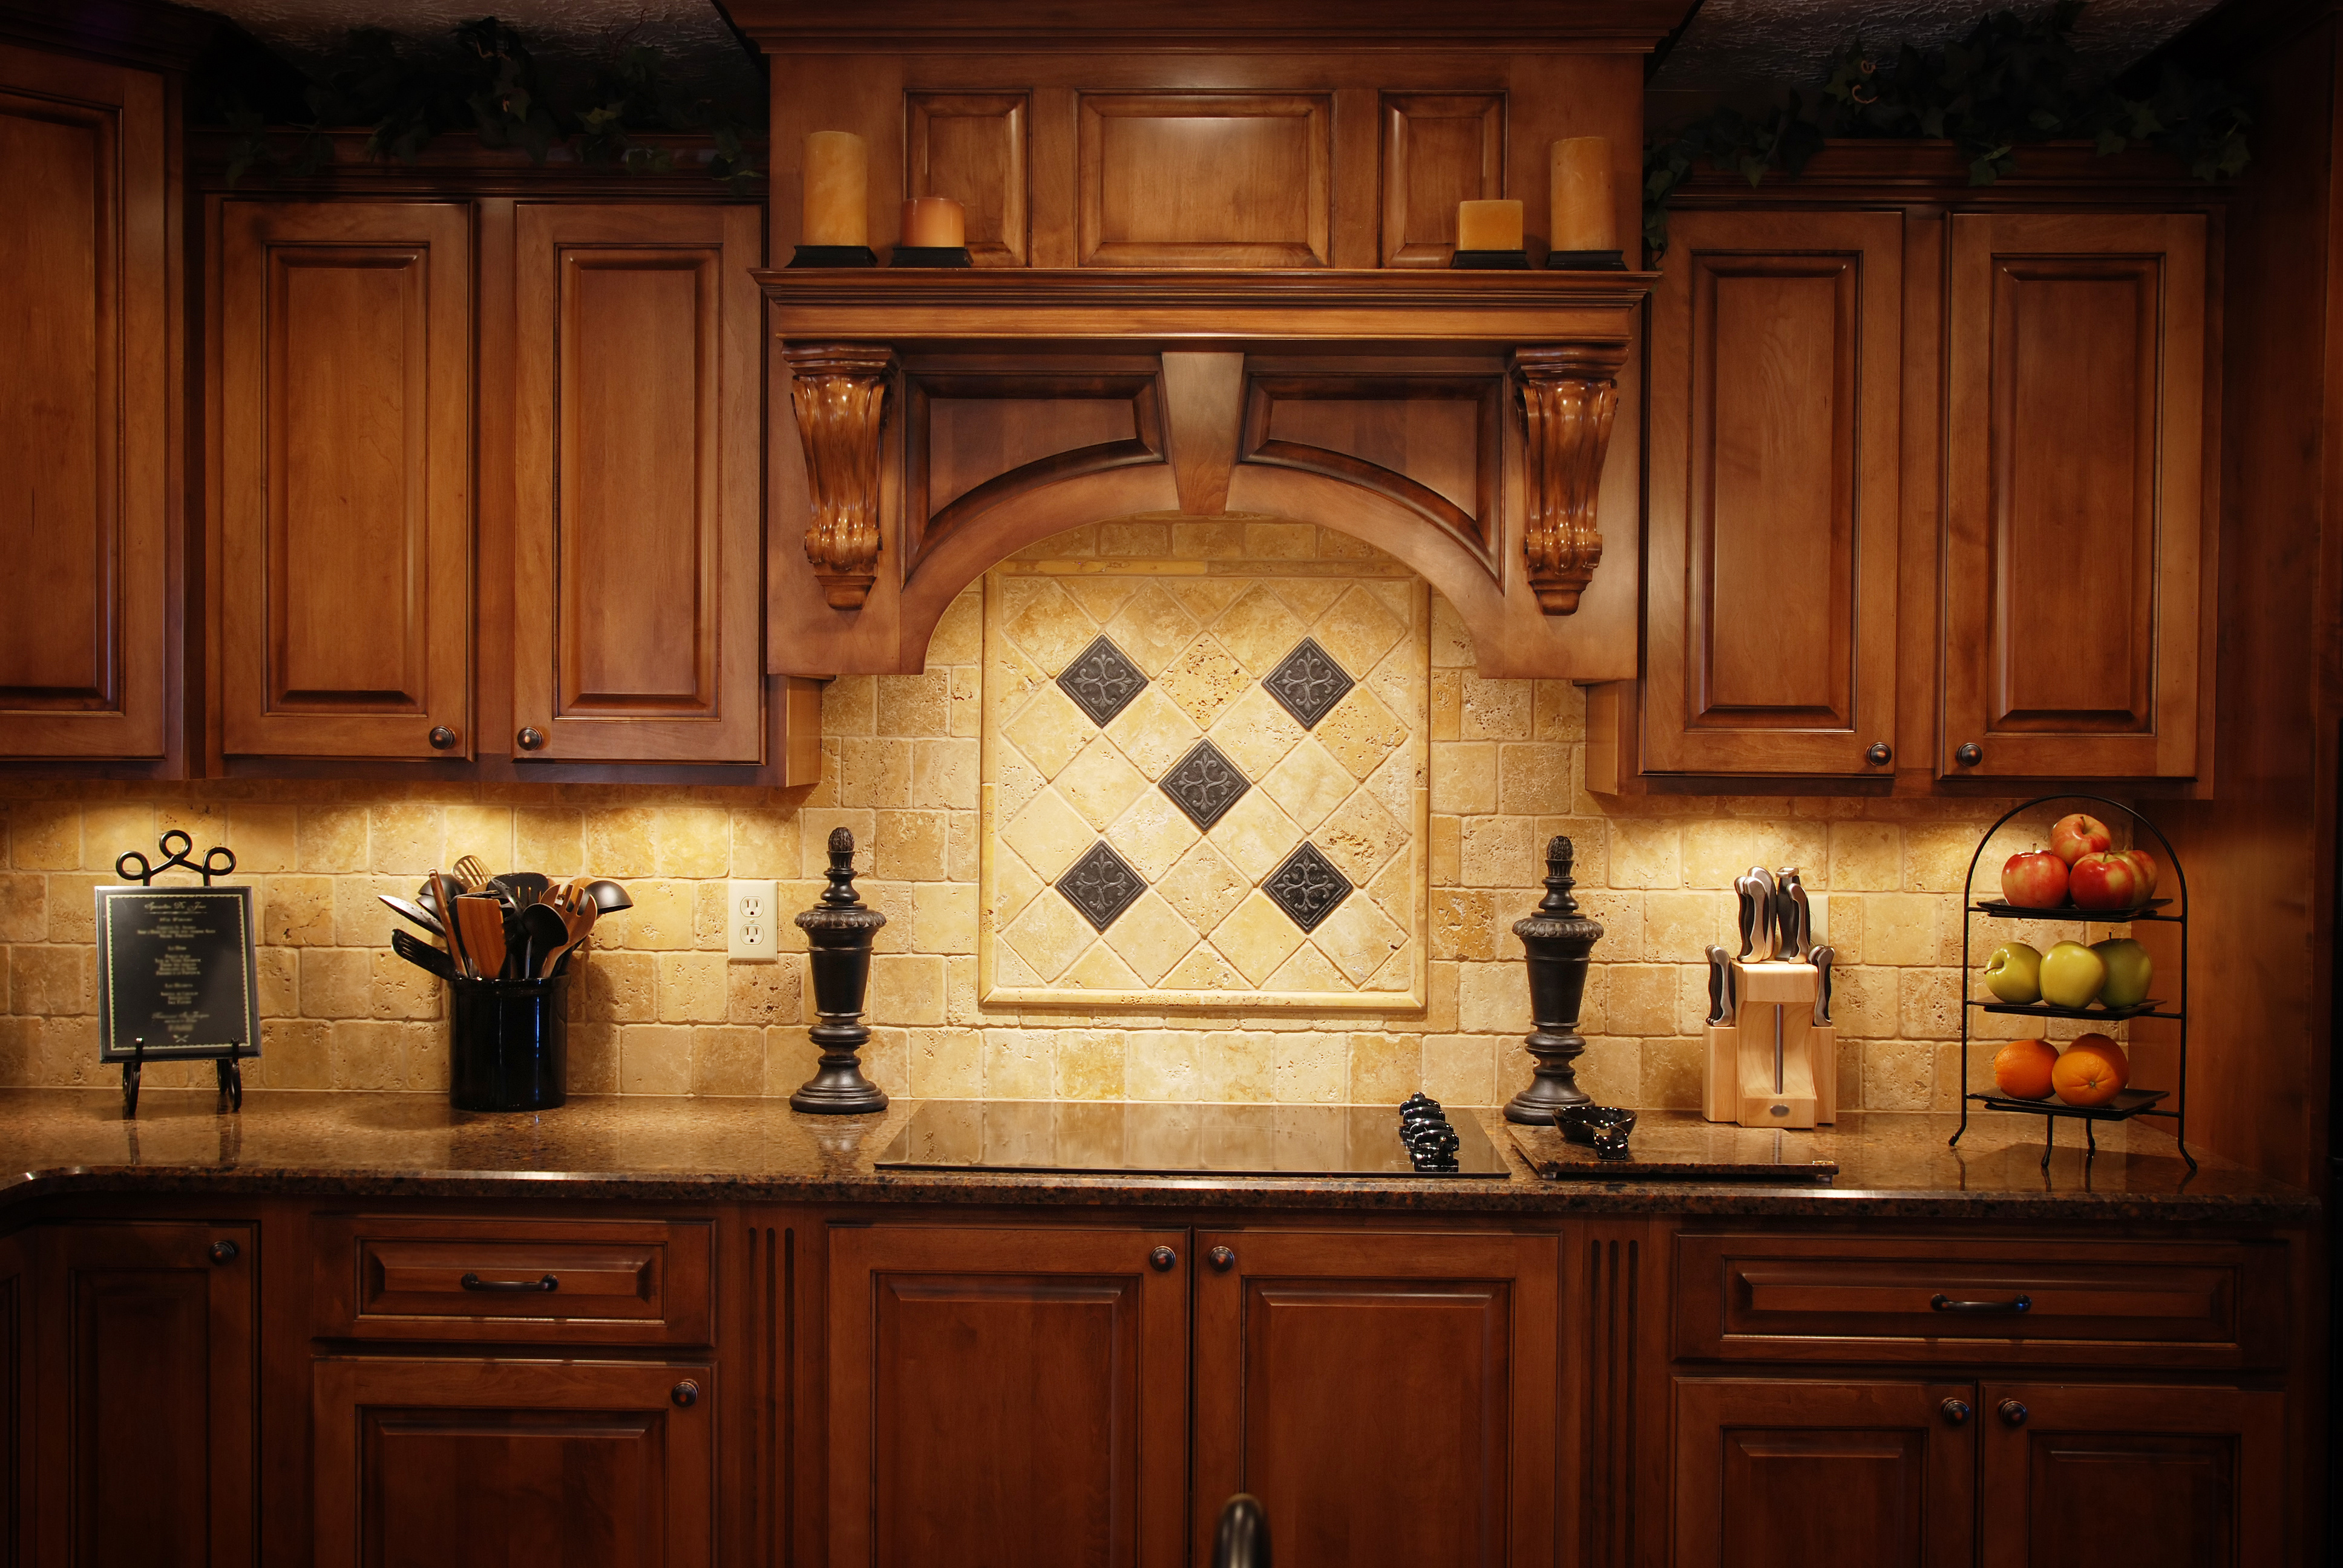 How To Get Great Ideas For Your Kitchen Remodel Chattanooga TN - Kitchen remodeling chattanooga tn